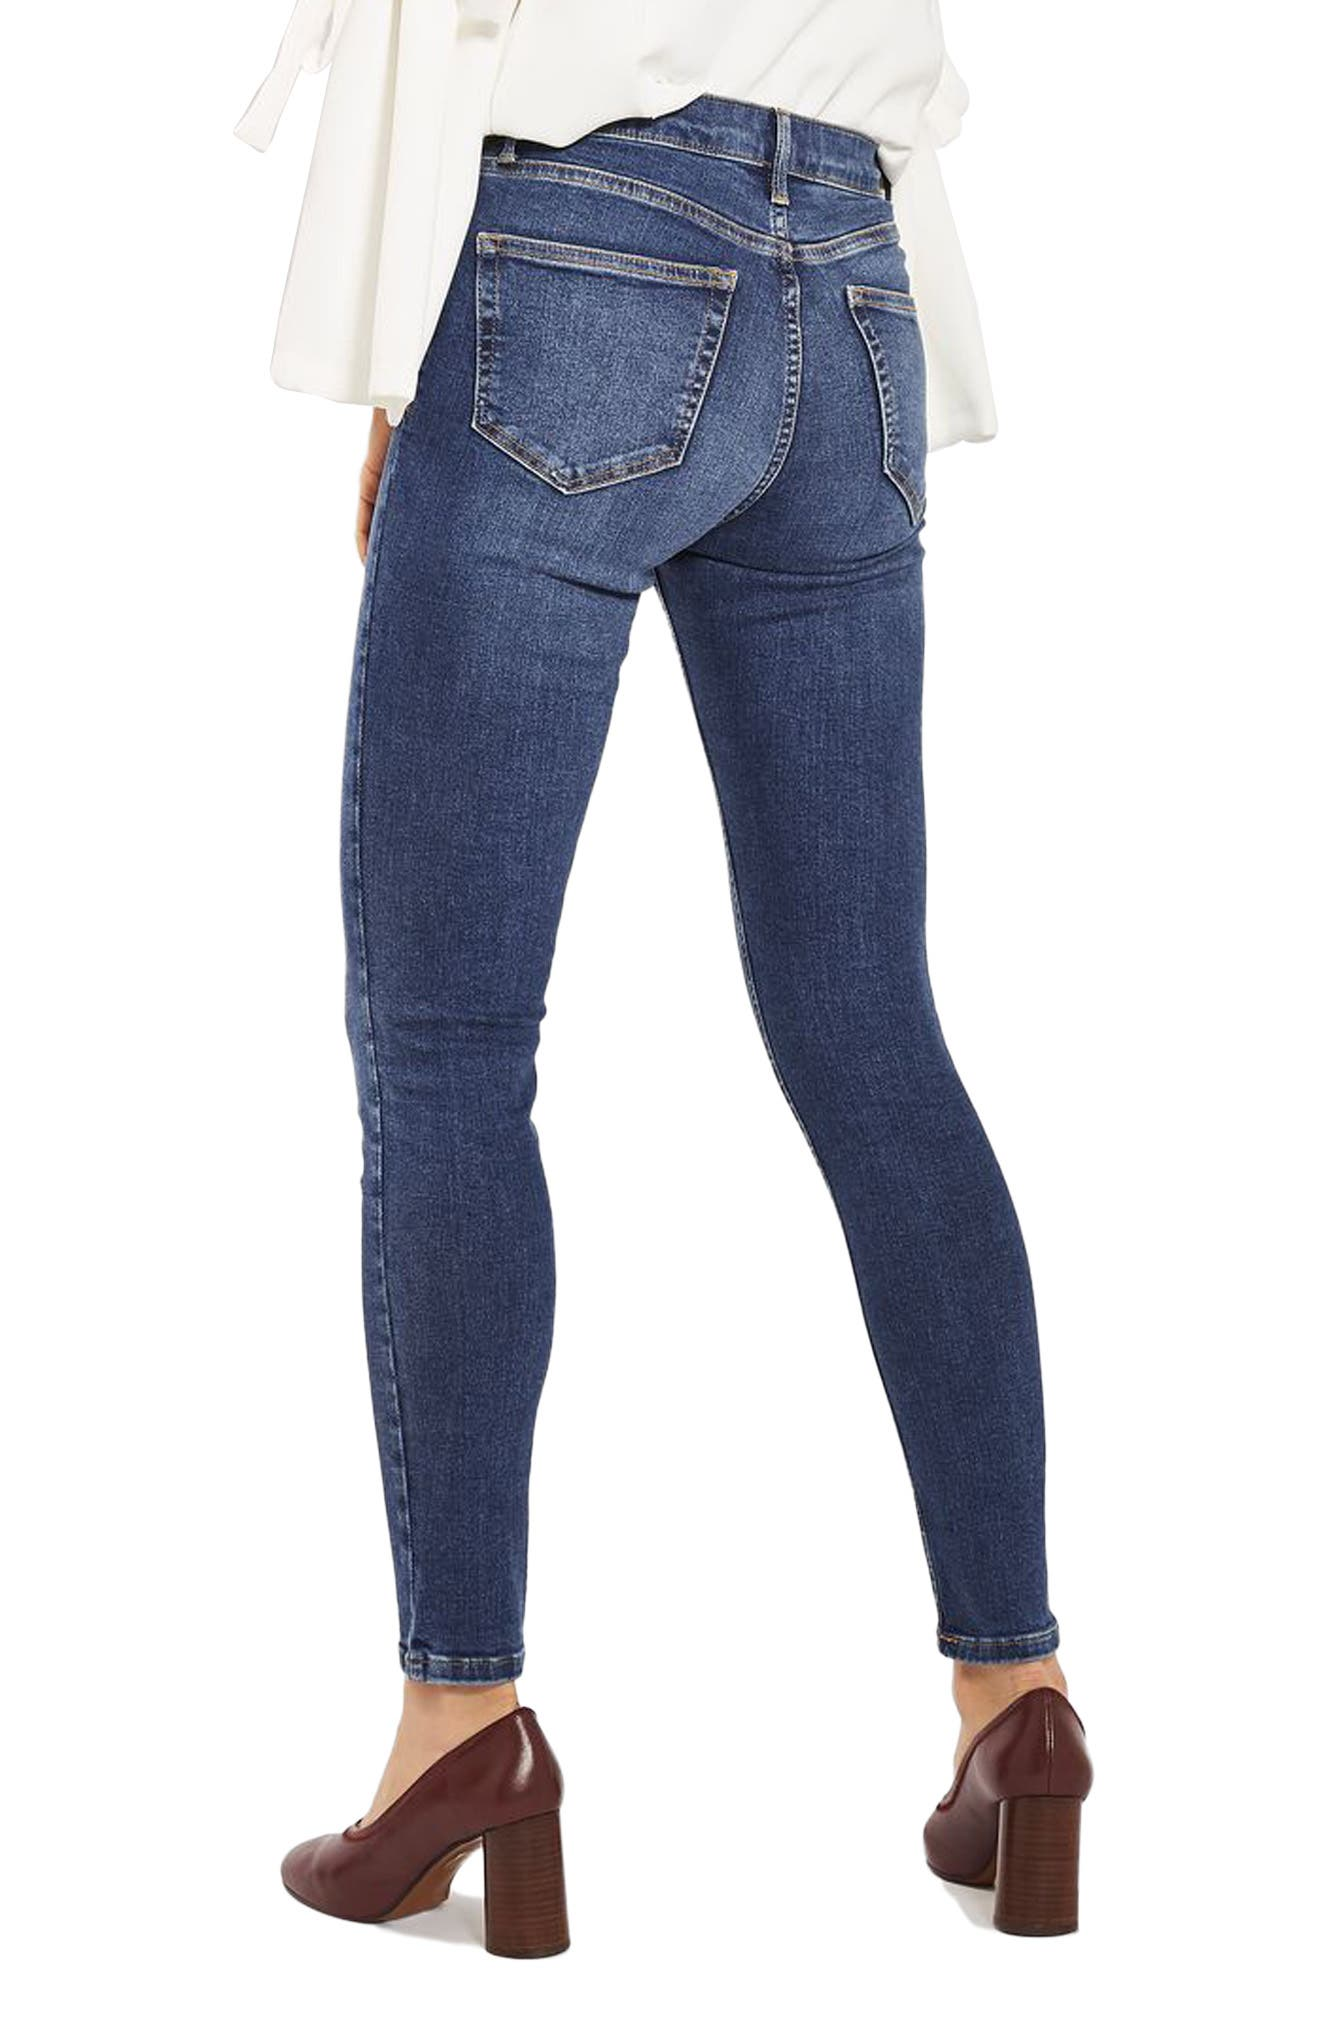 Jamie Indigo High Waist Skinny Jeans,                             Alternate thumbnail 3, color,                             Indigo